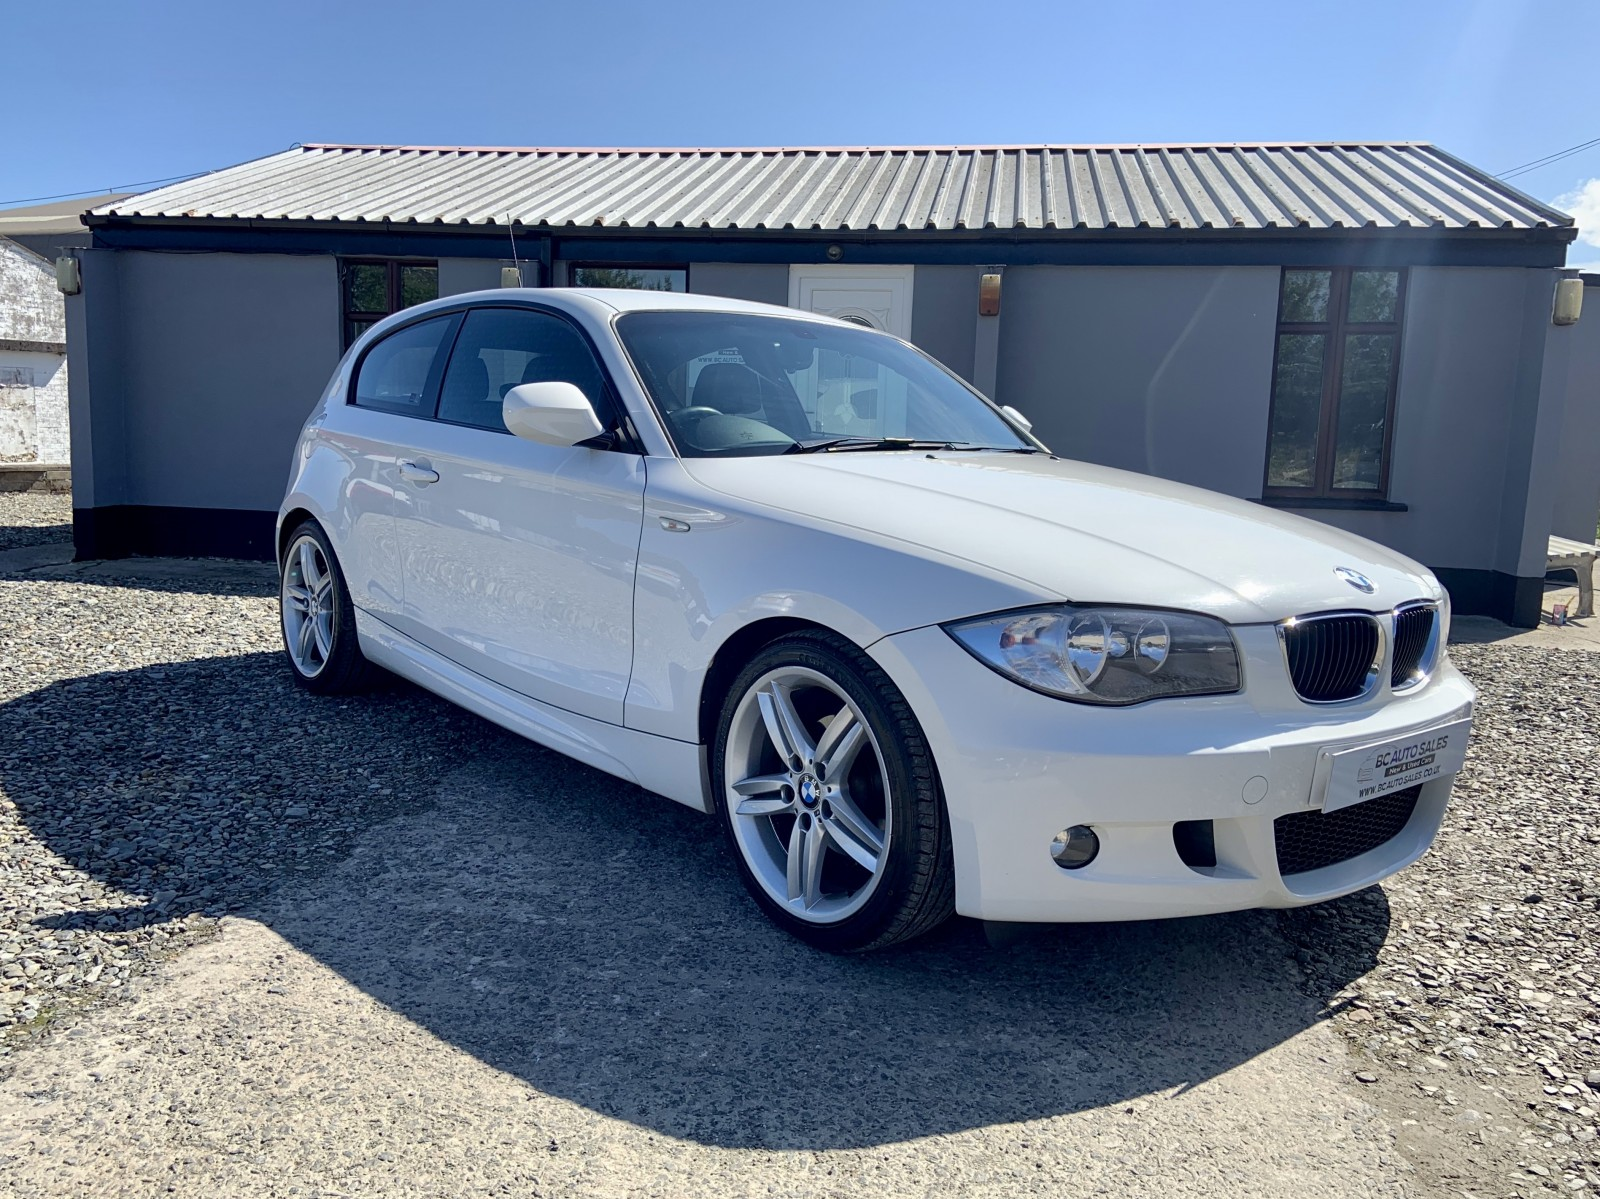 BMW 1 Series 116I PERFORMANCE EDITION Petrol Manual – BC Autosales 17A Airfield Road, Eglinton, Londonderry BT47 3PZ, UK full